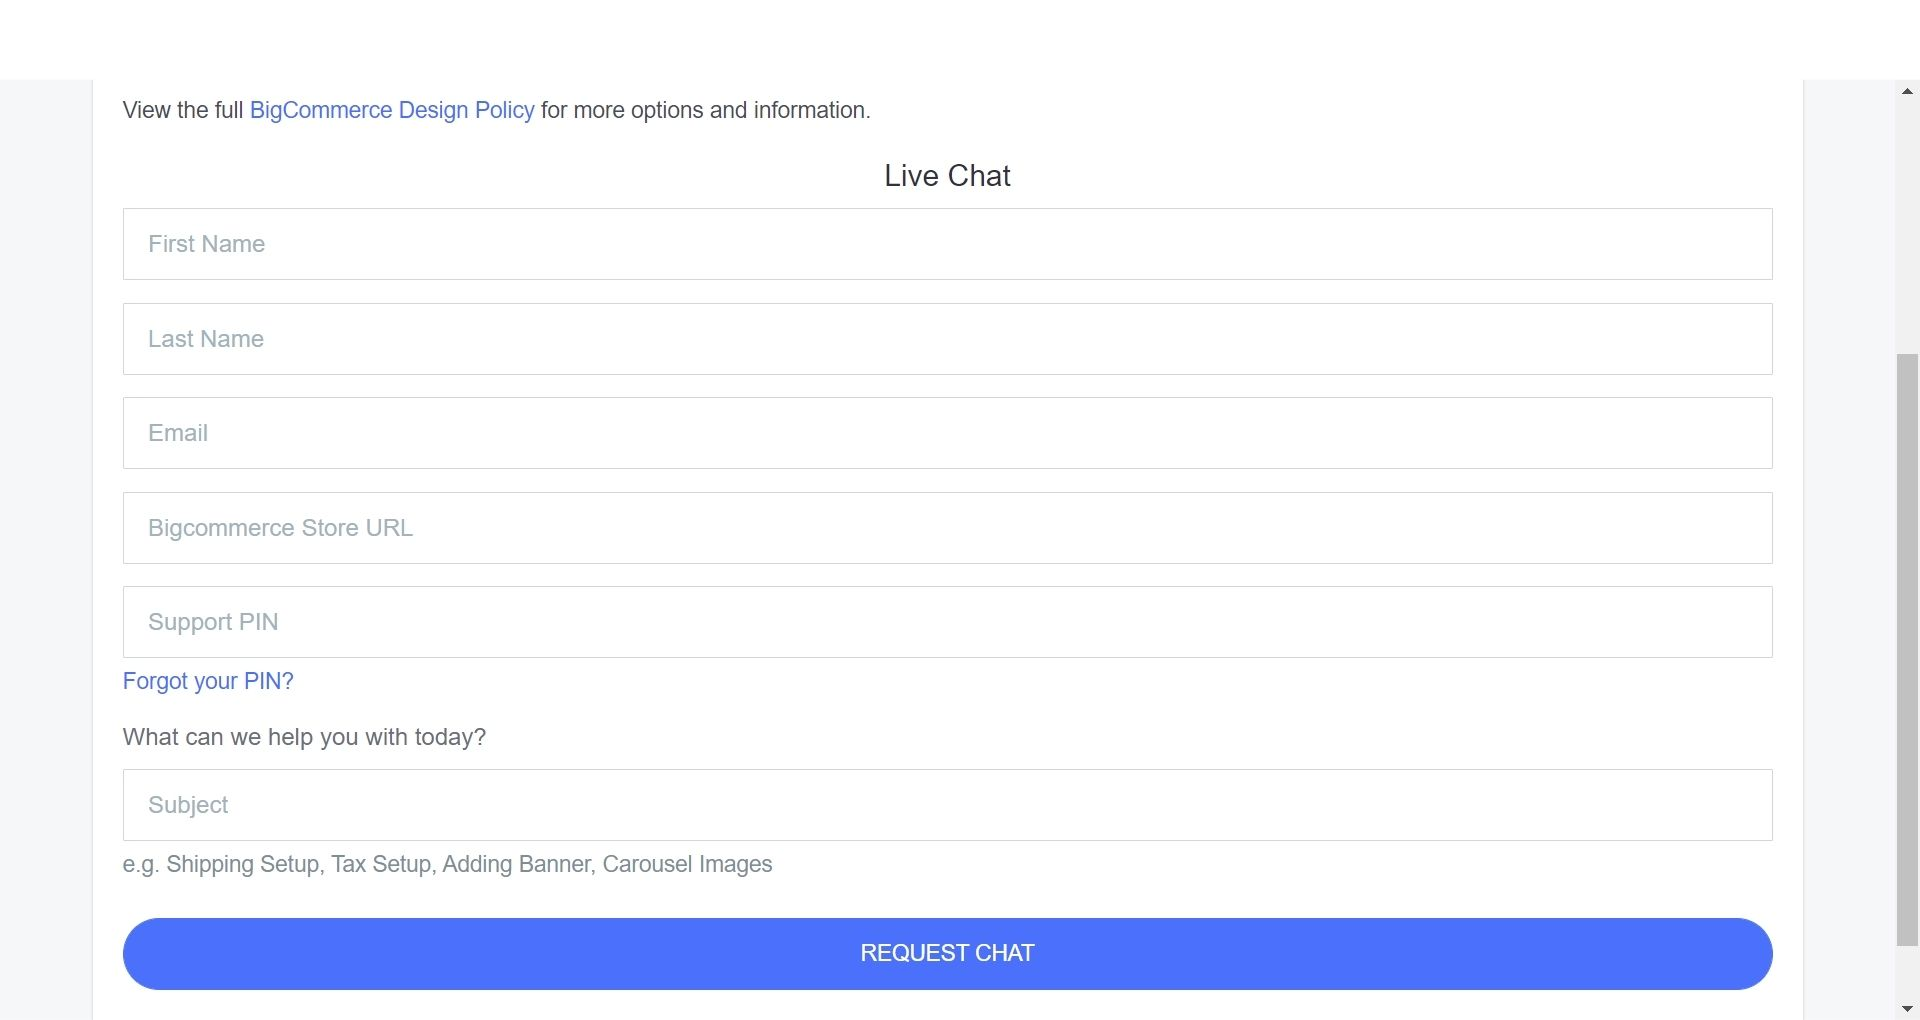 Contacting BigCommerce through live chat